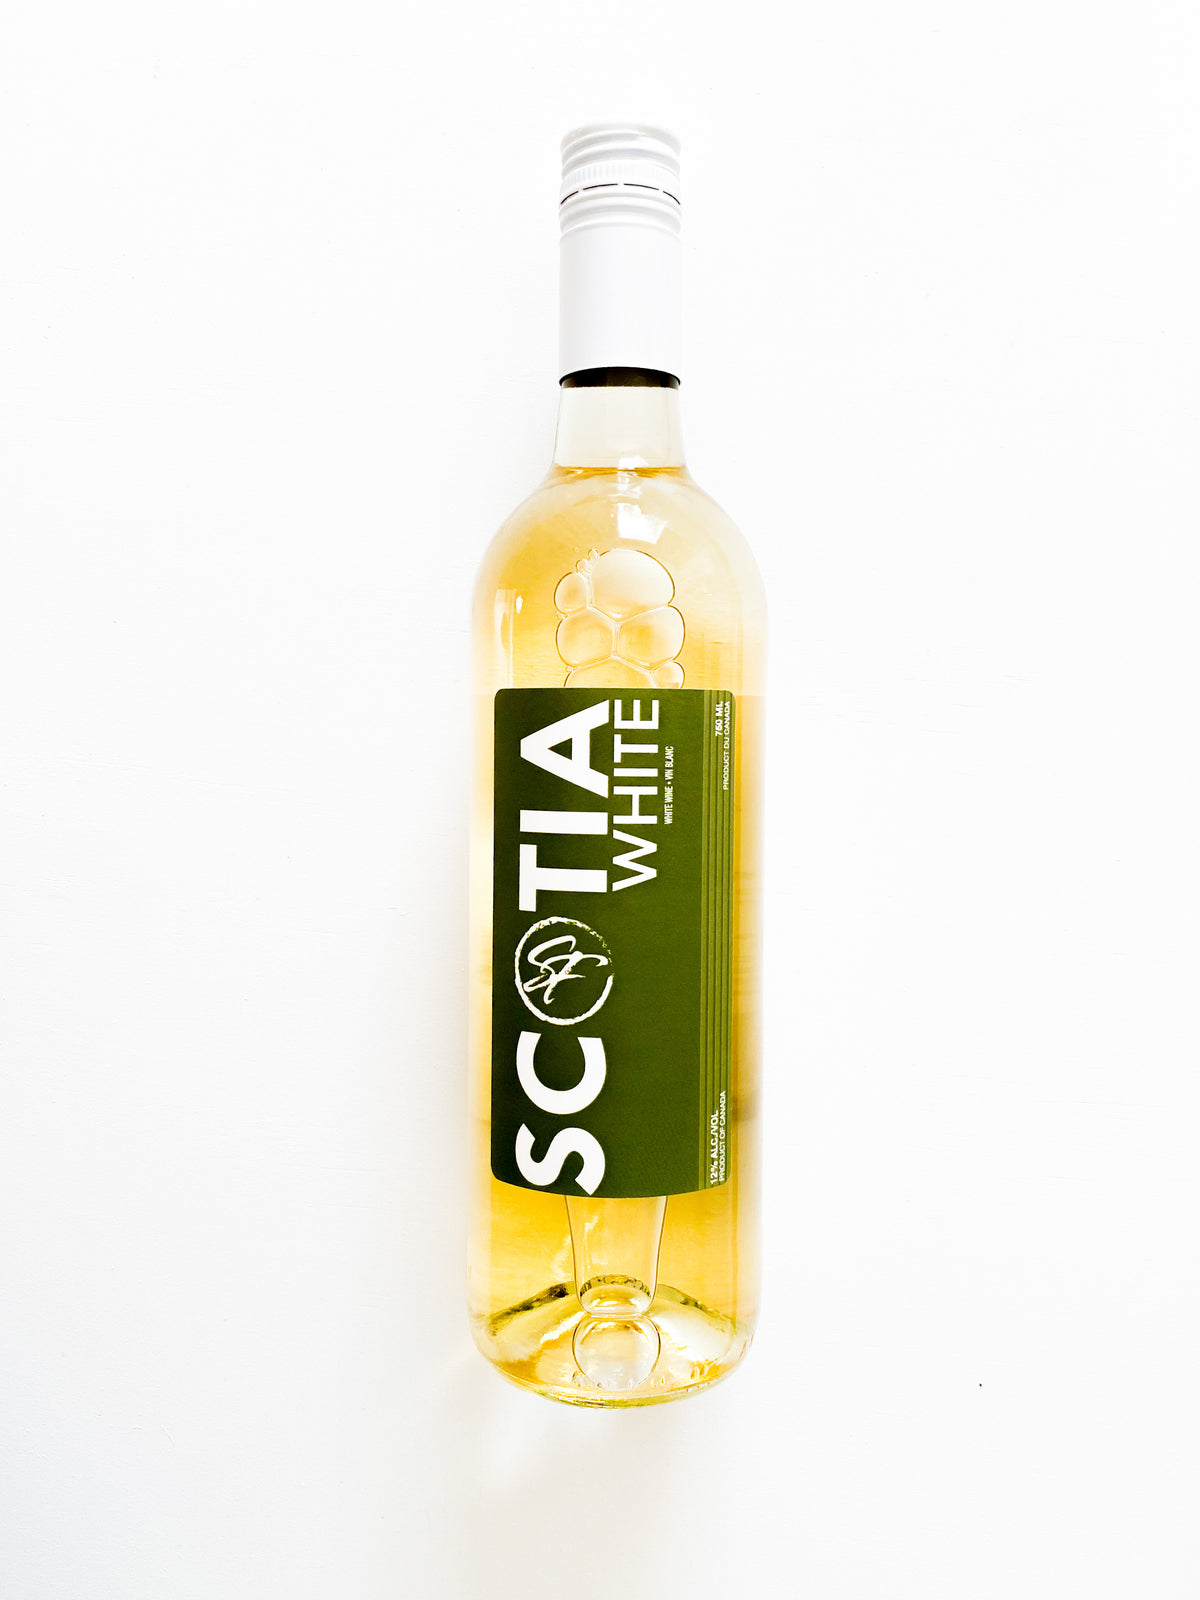 Bottle of Sainte-Famille Scotia White.